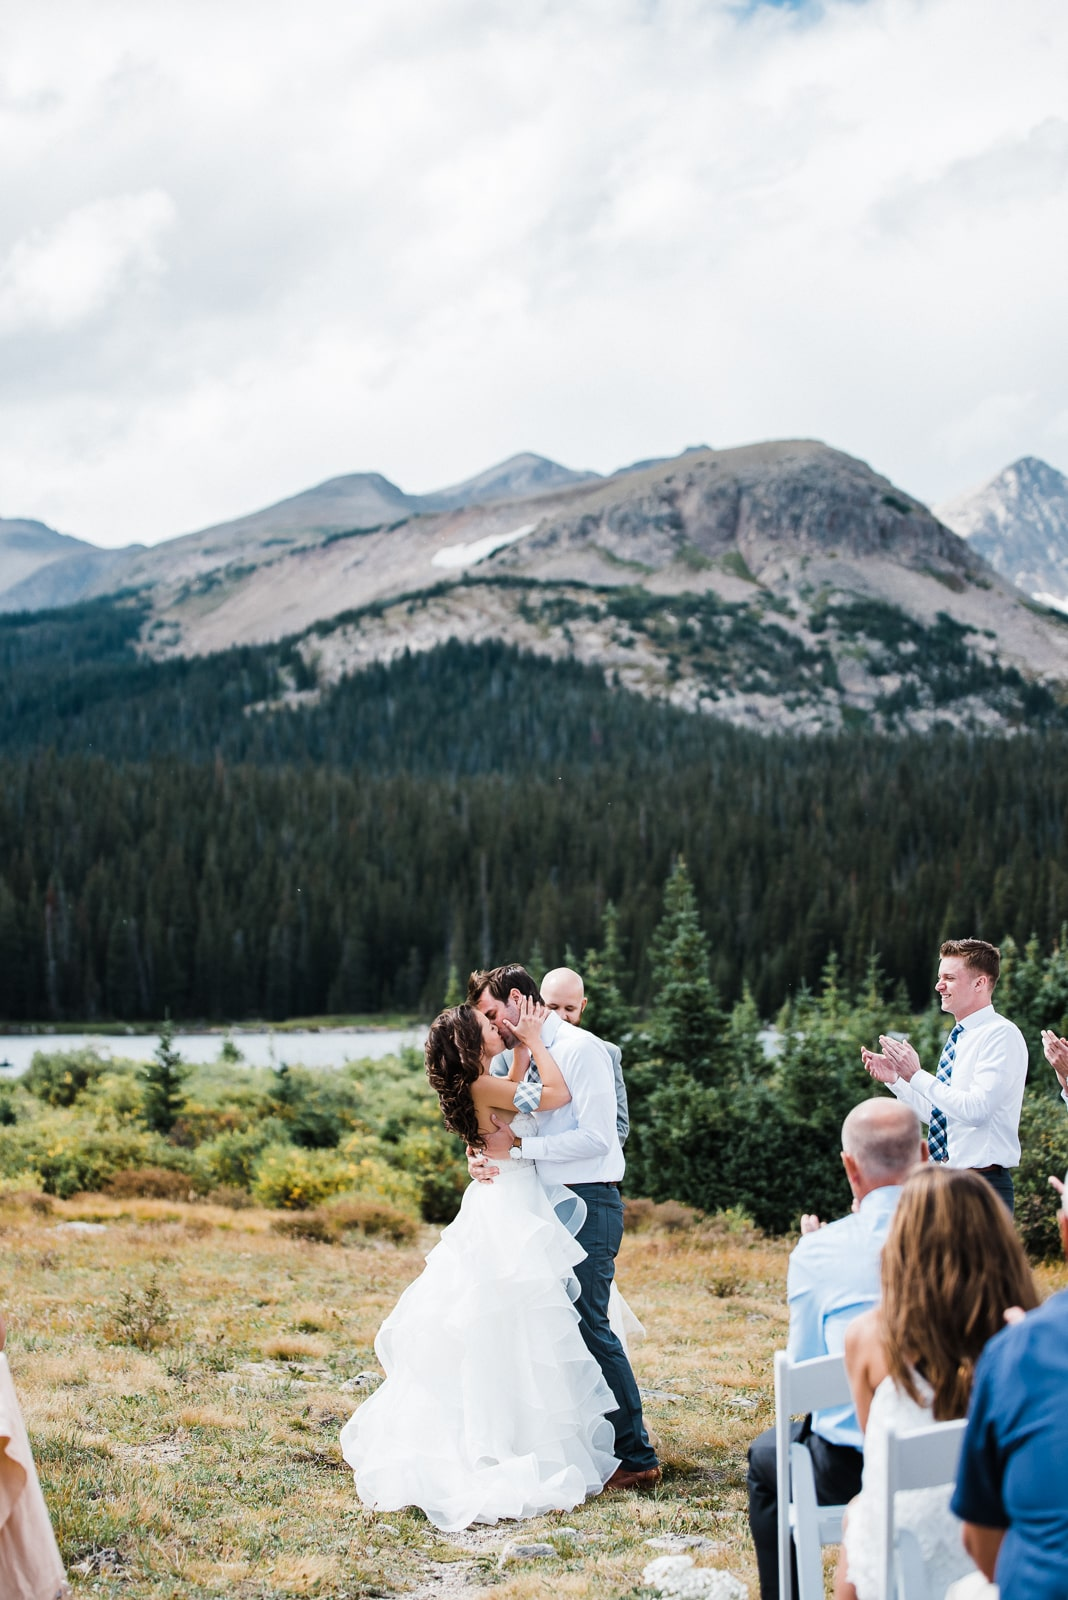 Couple has their first kiss at Brainard Lake in Colorado. Brainard Lake is one of the best locations for engagement, elopement and wedding photos near Denver. DIY Autumn Colorado Wedding | Brainard Lake Wedding | Josie V Photography